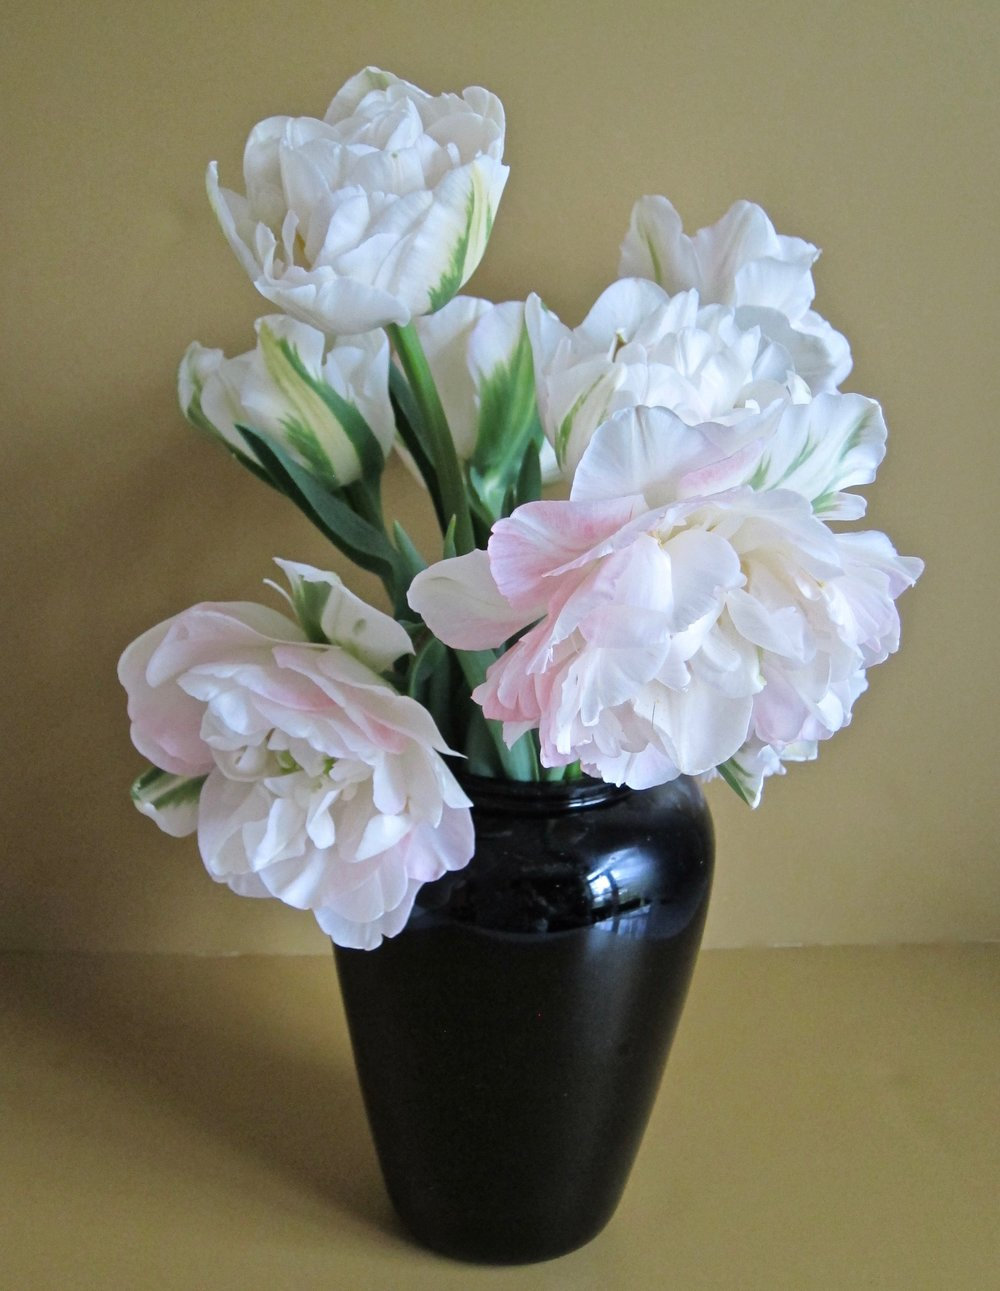 SIMPLE DRAMA   A few large seasonal premium flowers, such as angelica tulips, peonies, or garden roses in a black ceramic vase.